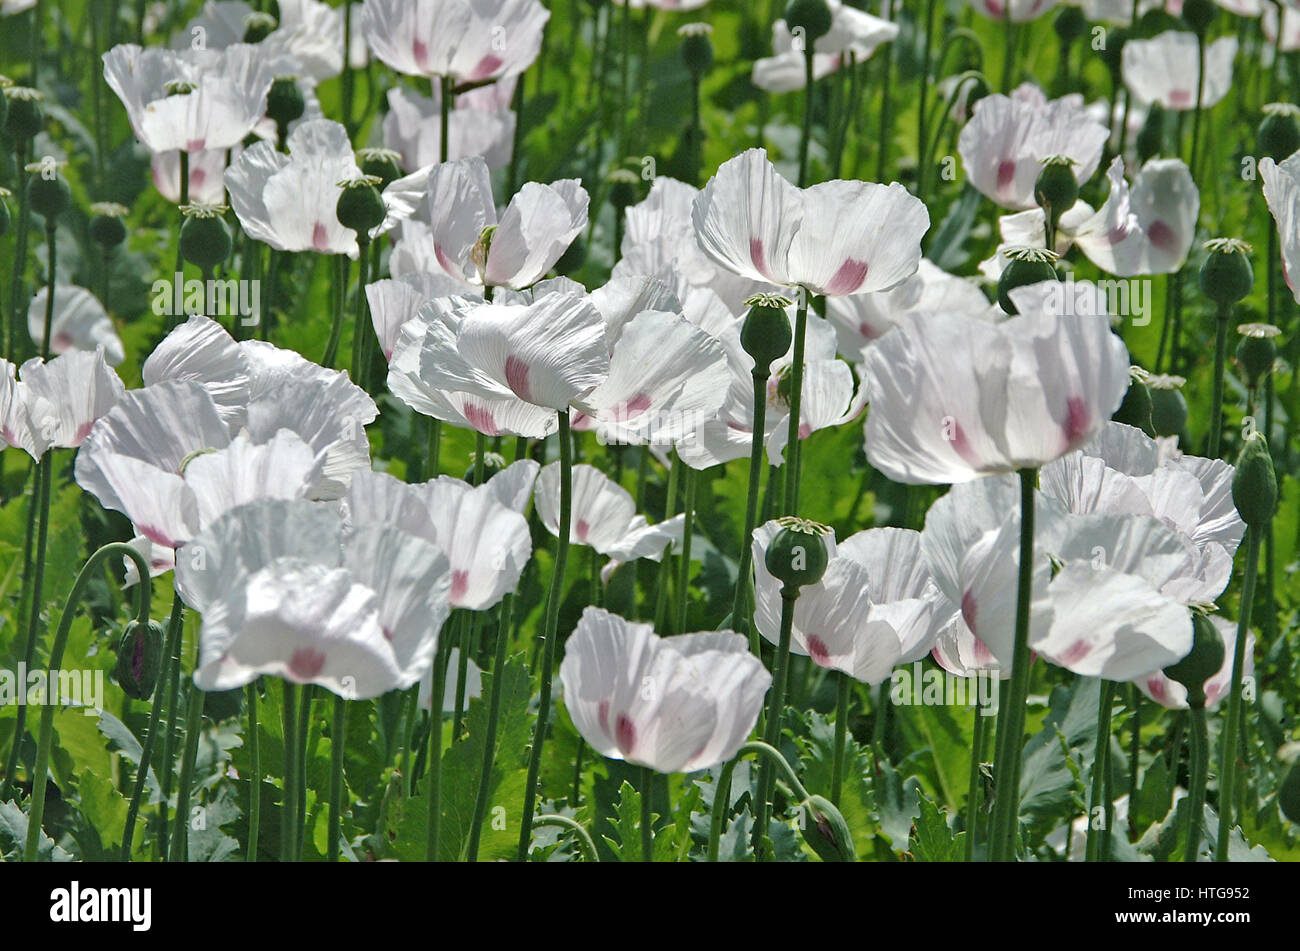 White Opium Poppy (Papaver Somniferum) growing in a Hampshire field Stock Photo